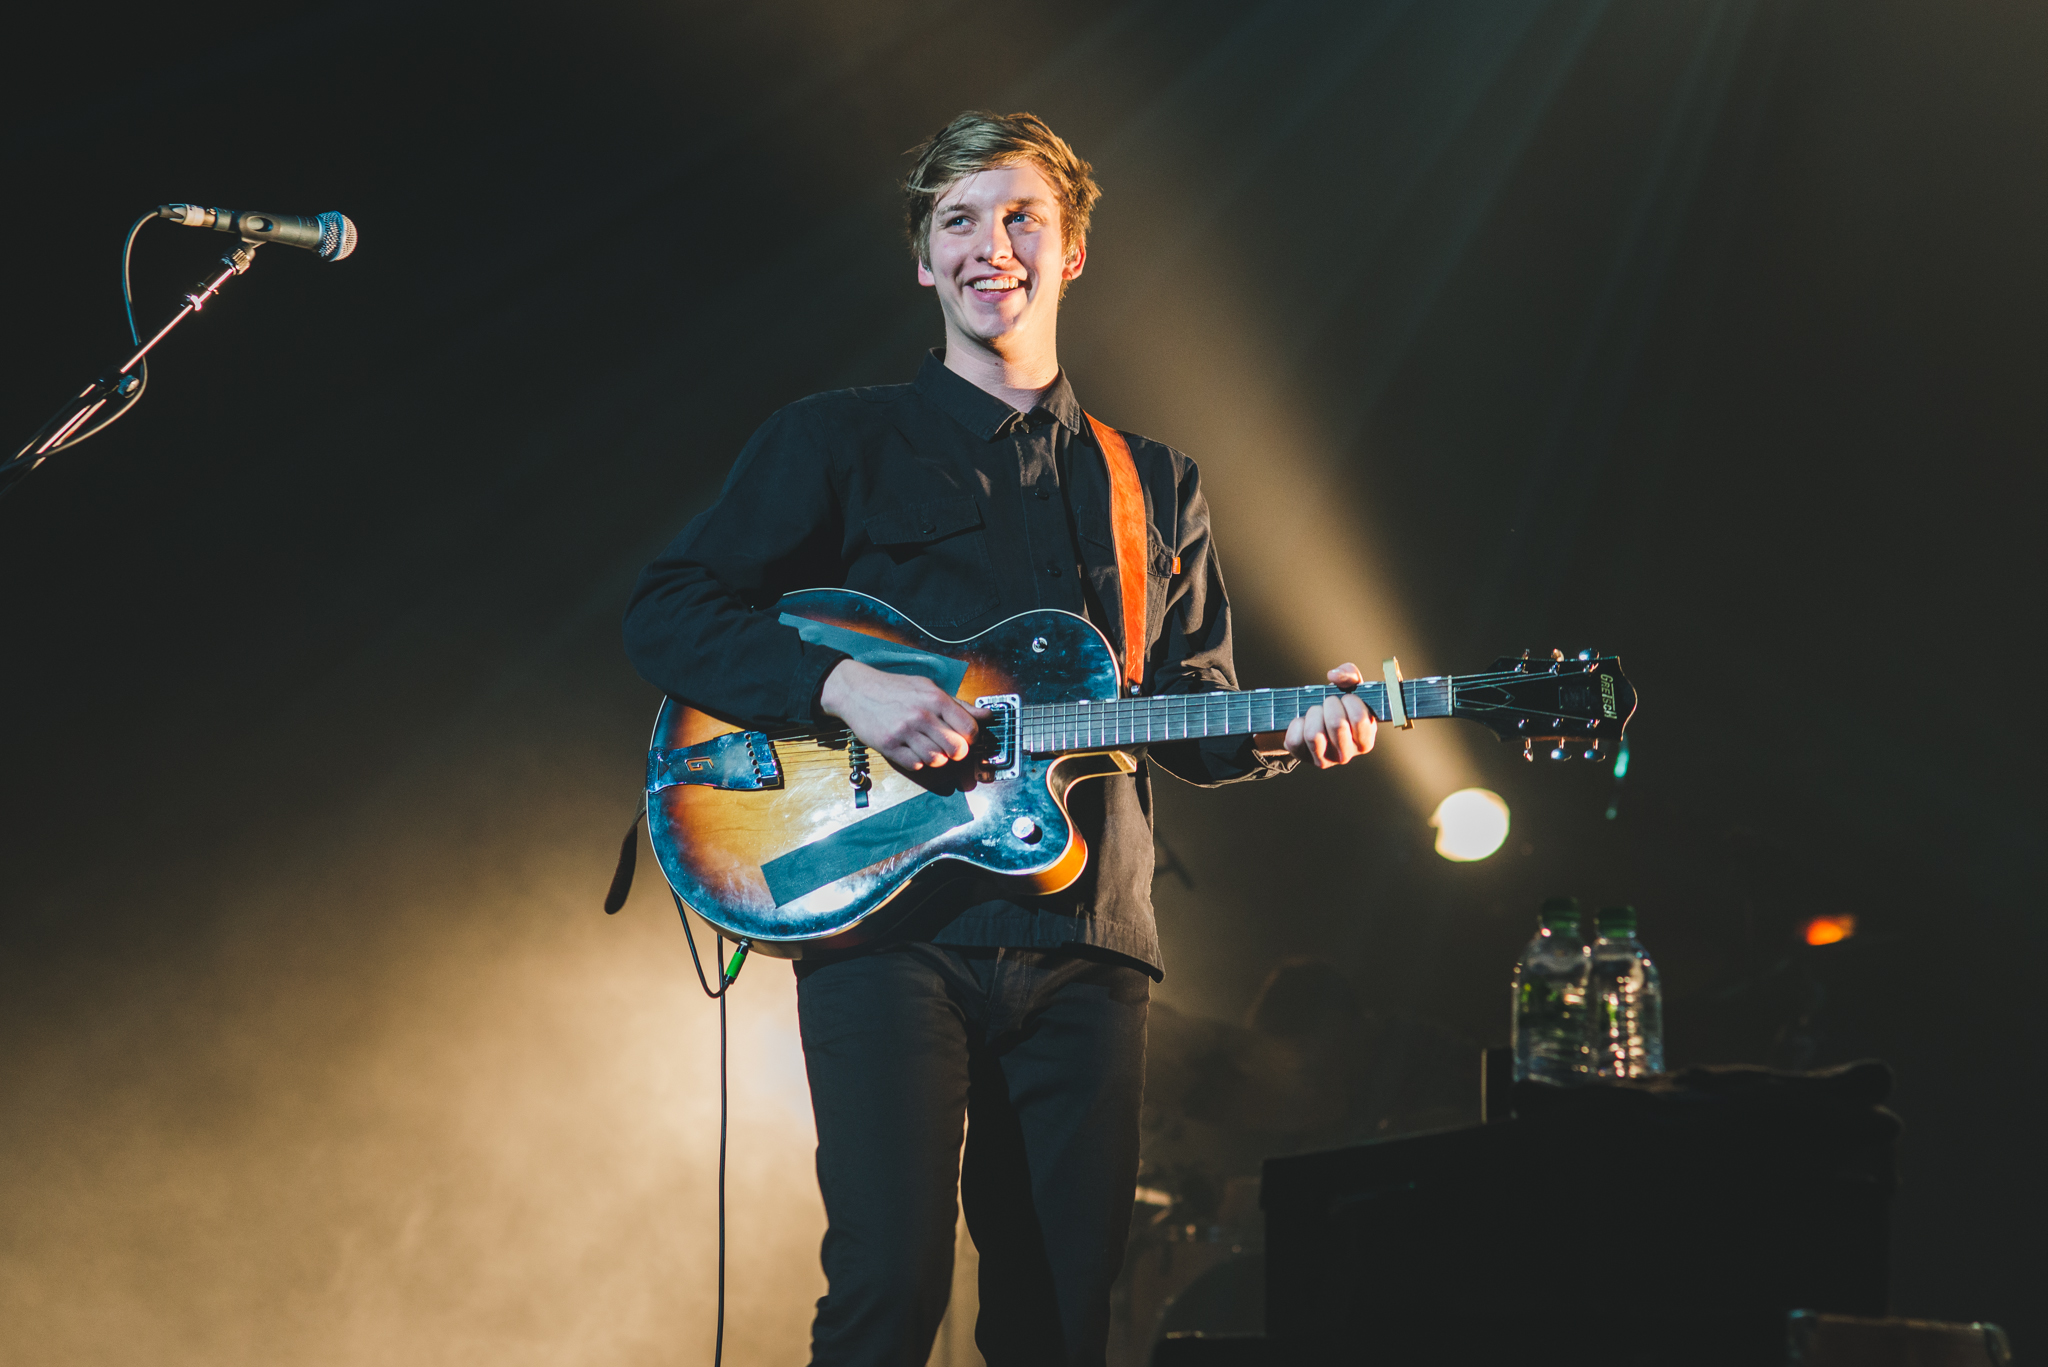 George Ezra pulls out of Coachella performance due to viral laryngitis